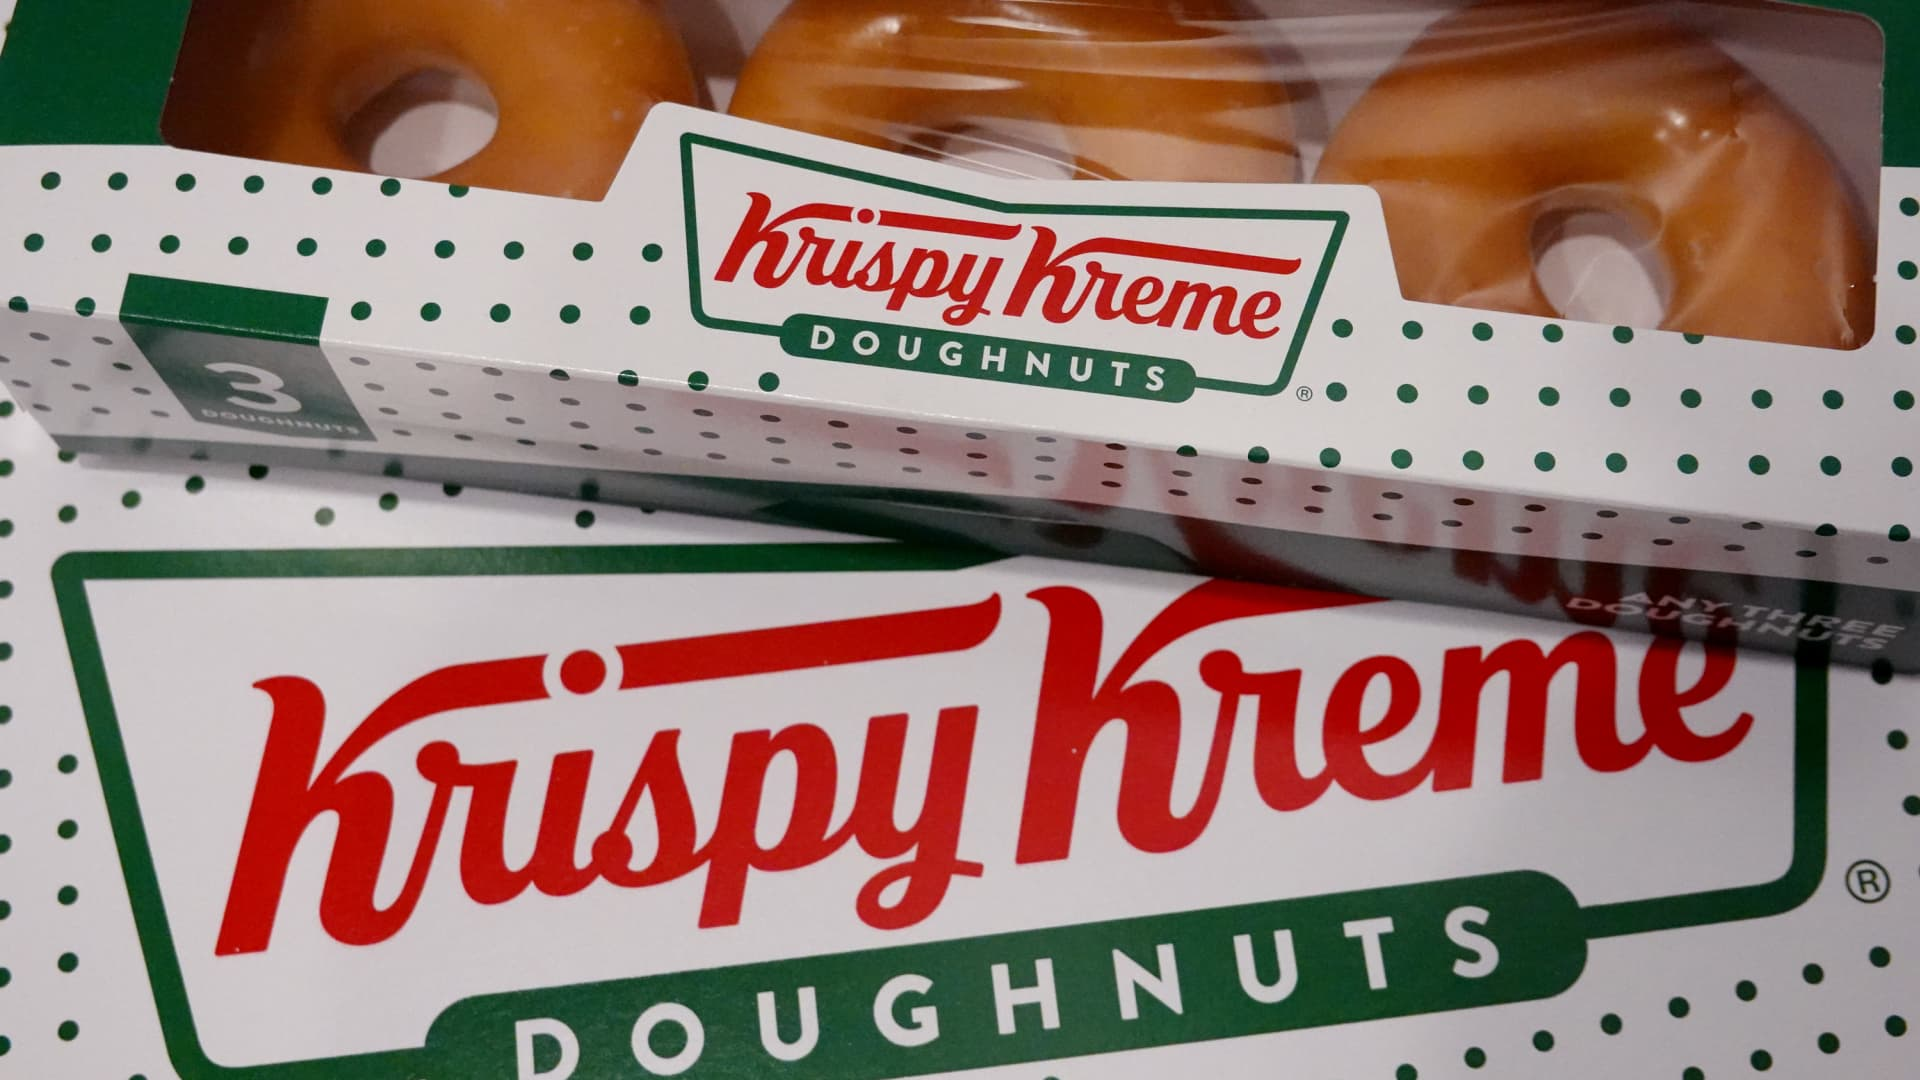 Doughnuts are sold at a Krispy Kreme store on May 05, 2021 in Chicago, Illinois. The doughnut chain reported yesterday that it plans to take the company public again.